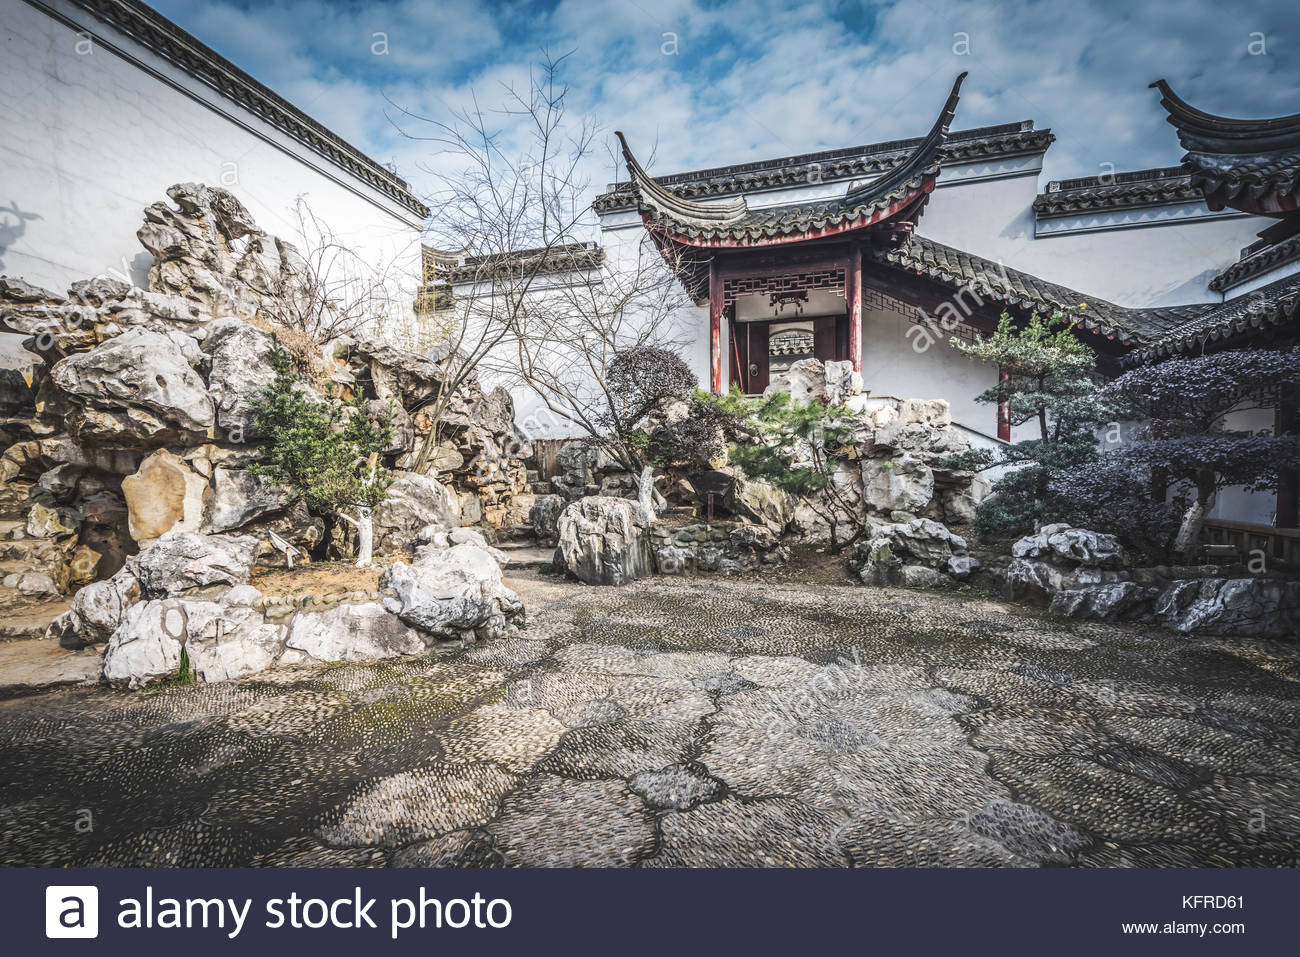 ancient chinese architecture in suzhou garden stock photo